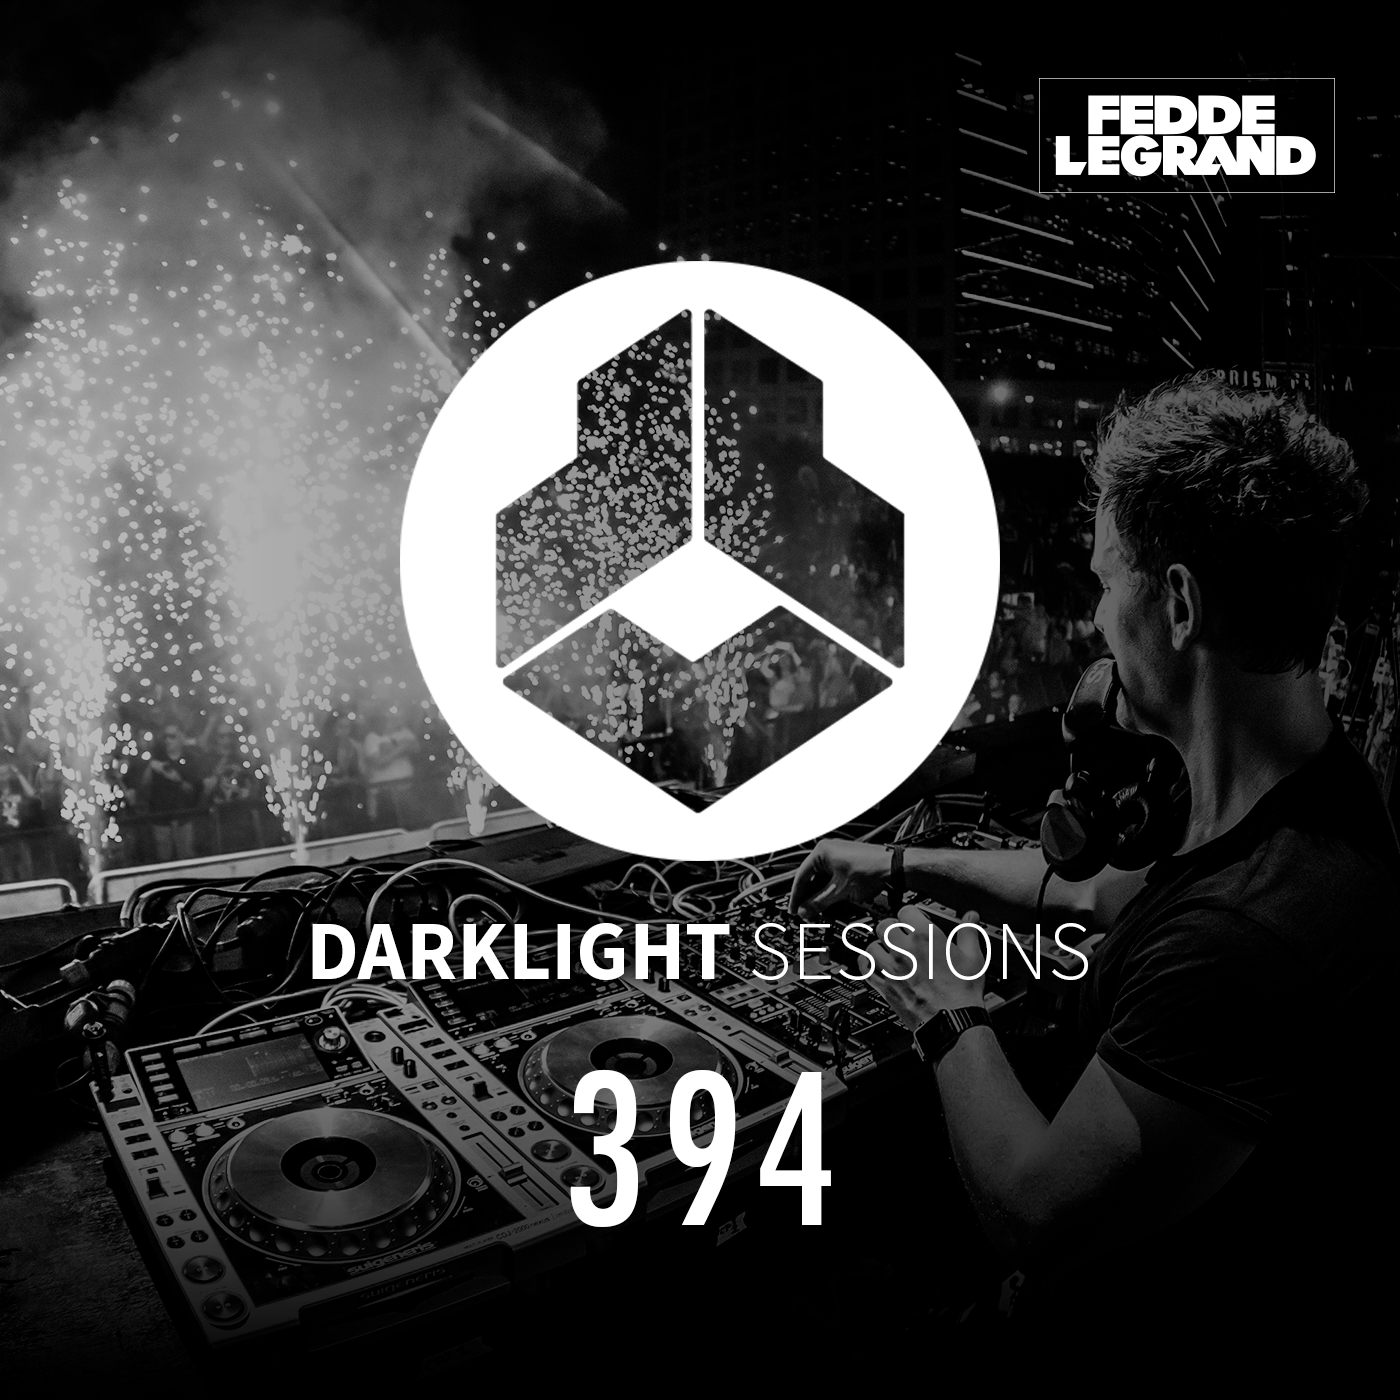 Darklight Sessions 394